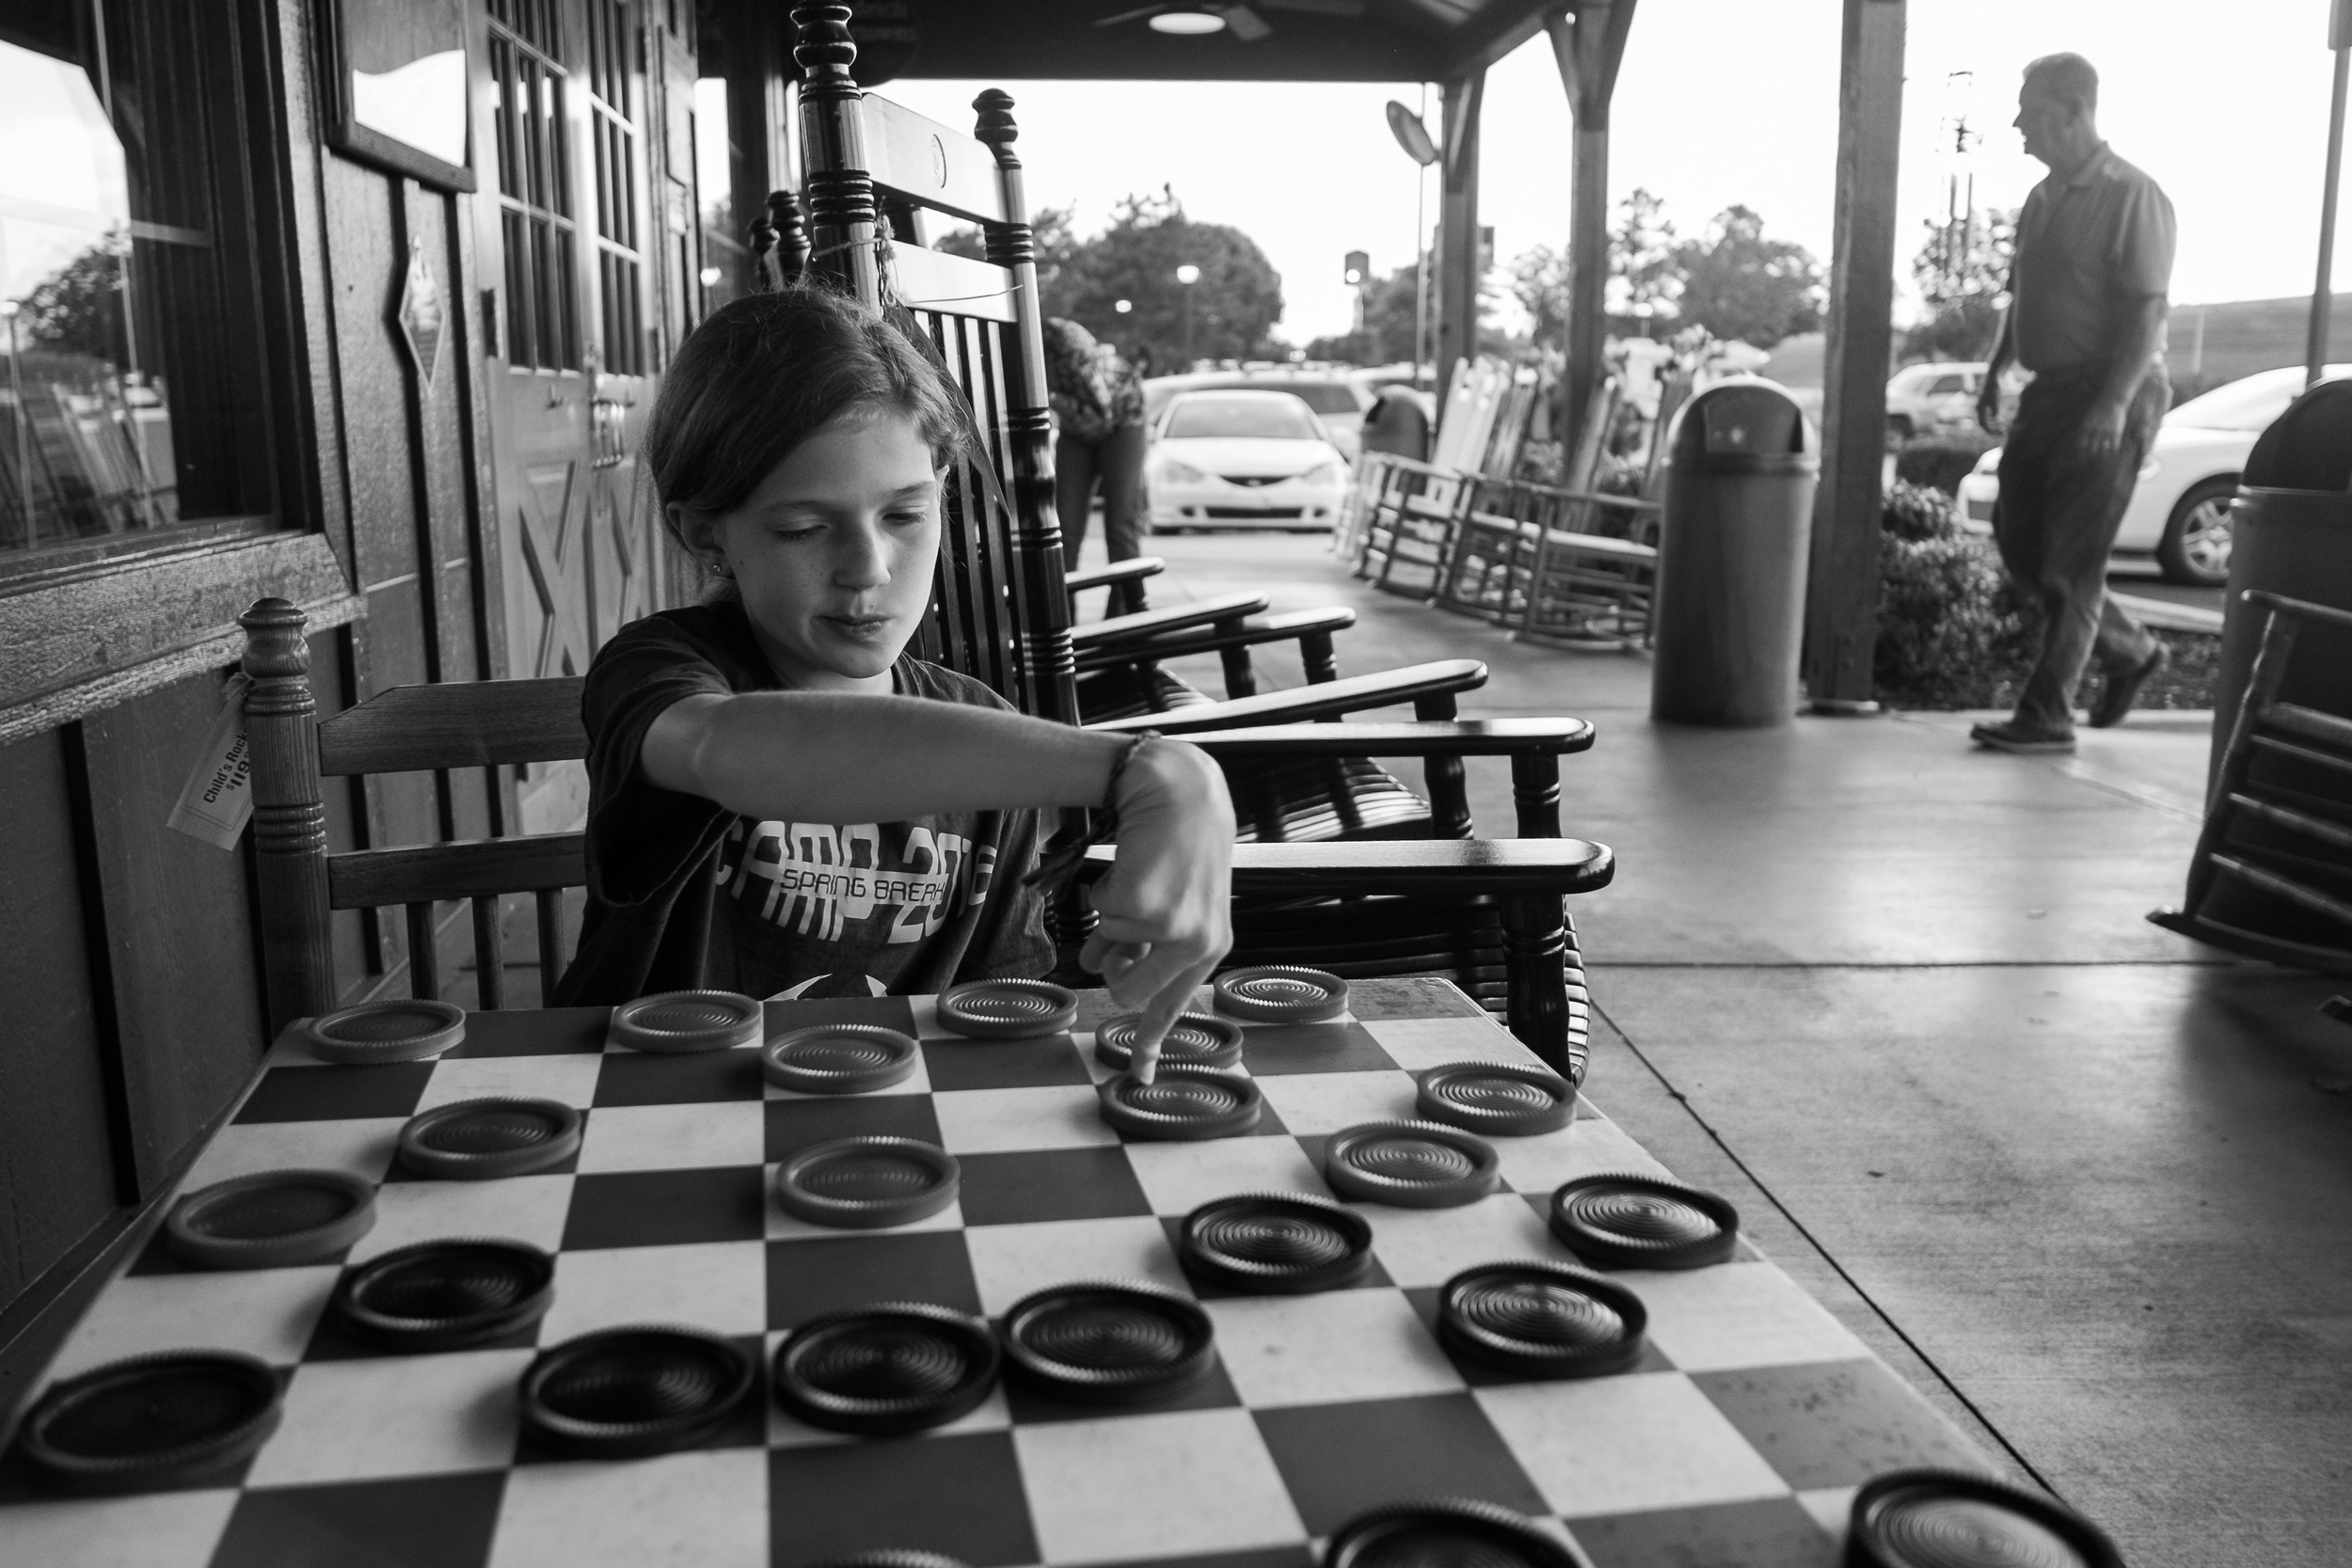 Saturday night, El and I took a quick break from the team to pick up some take-out from Cracker Barrel. Naturally we had to test out the oversized Checkers board and rocking chairs while we waited.